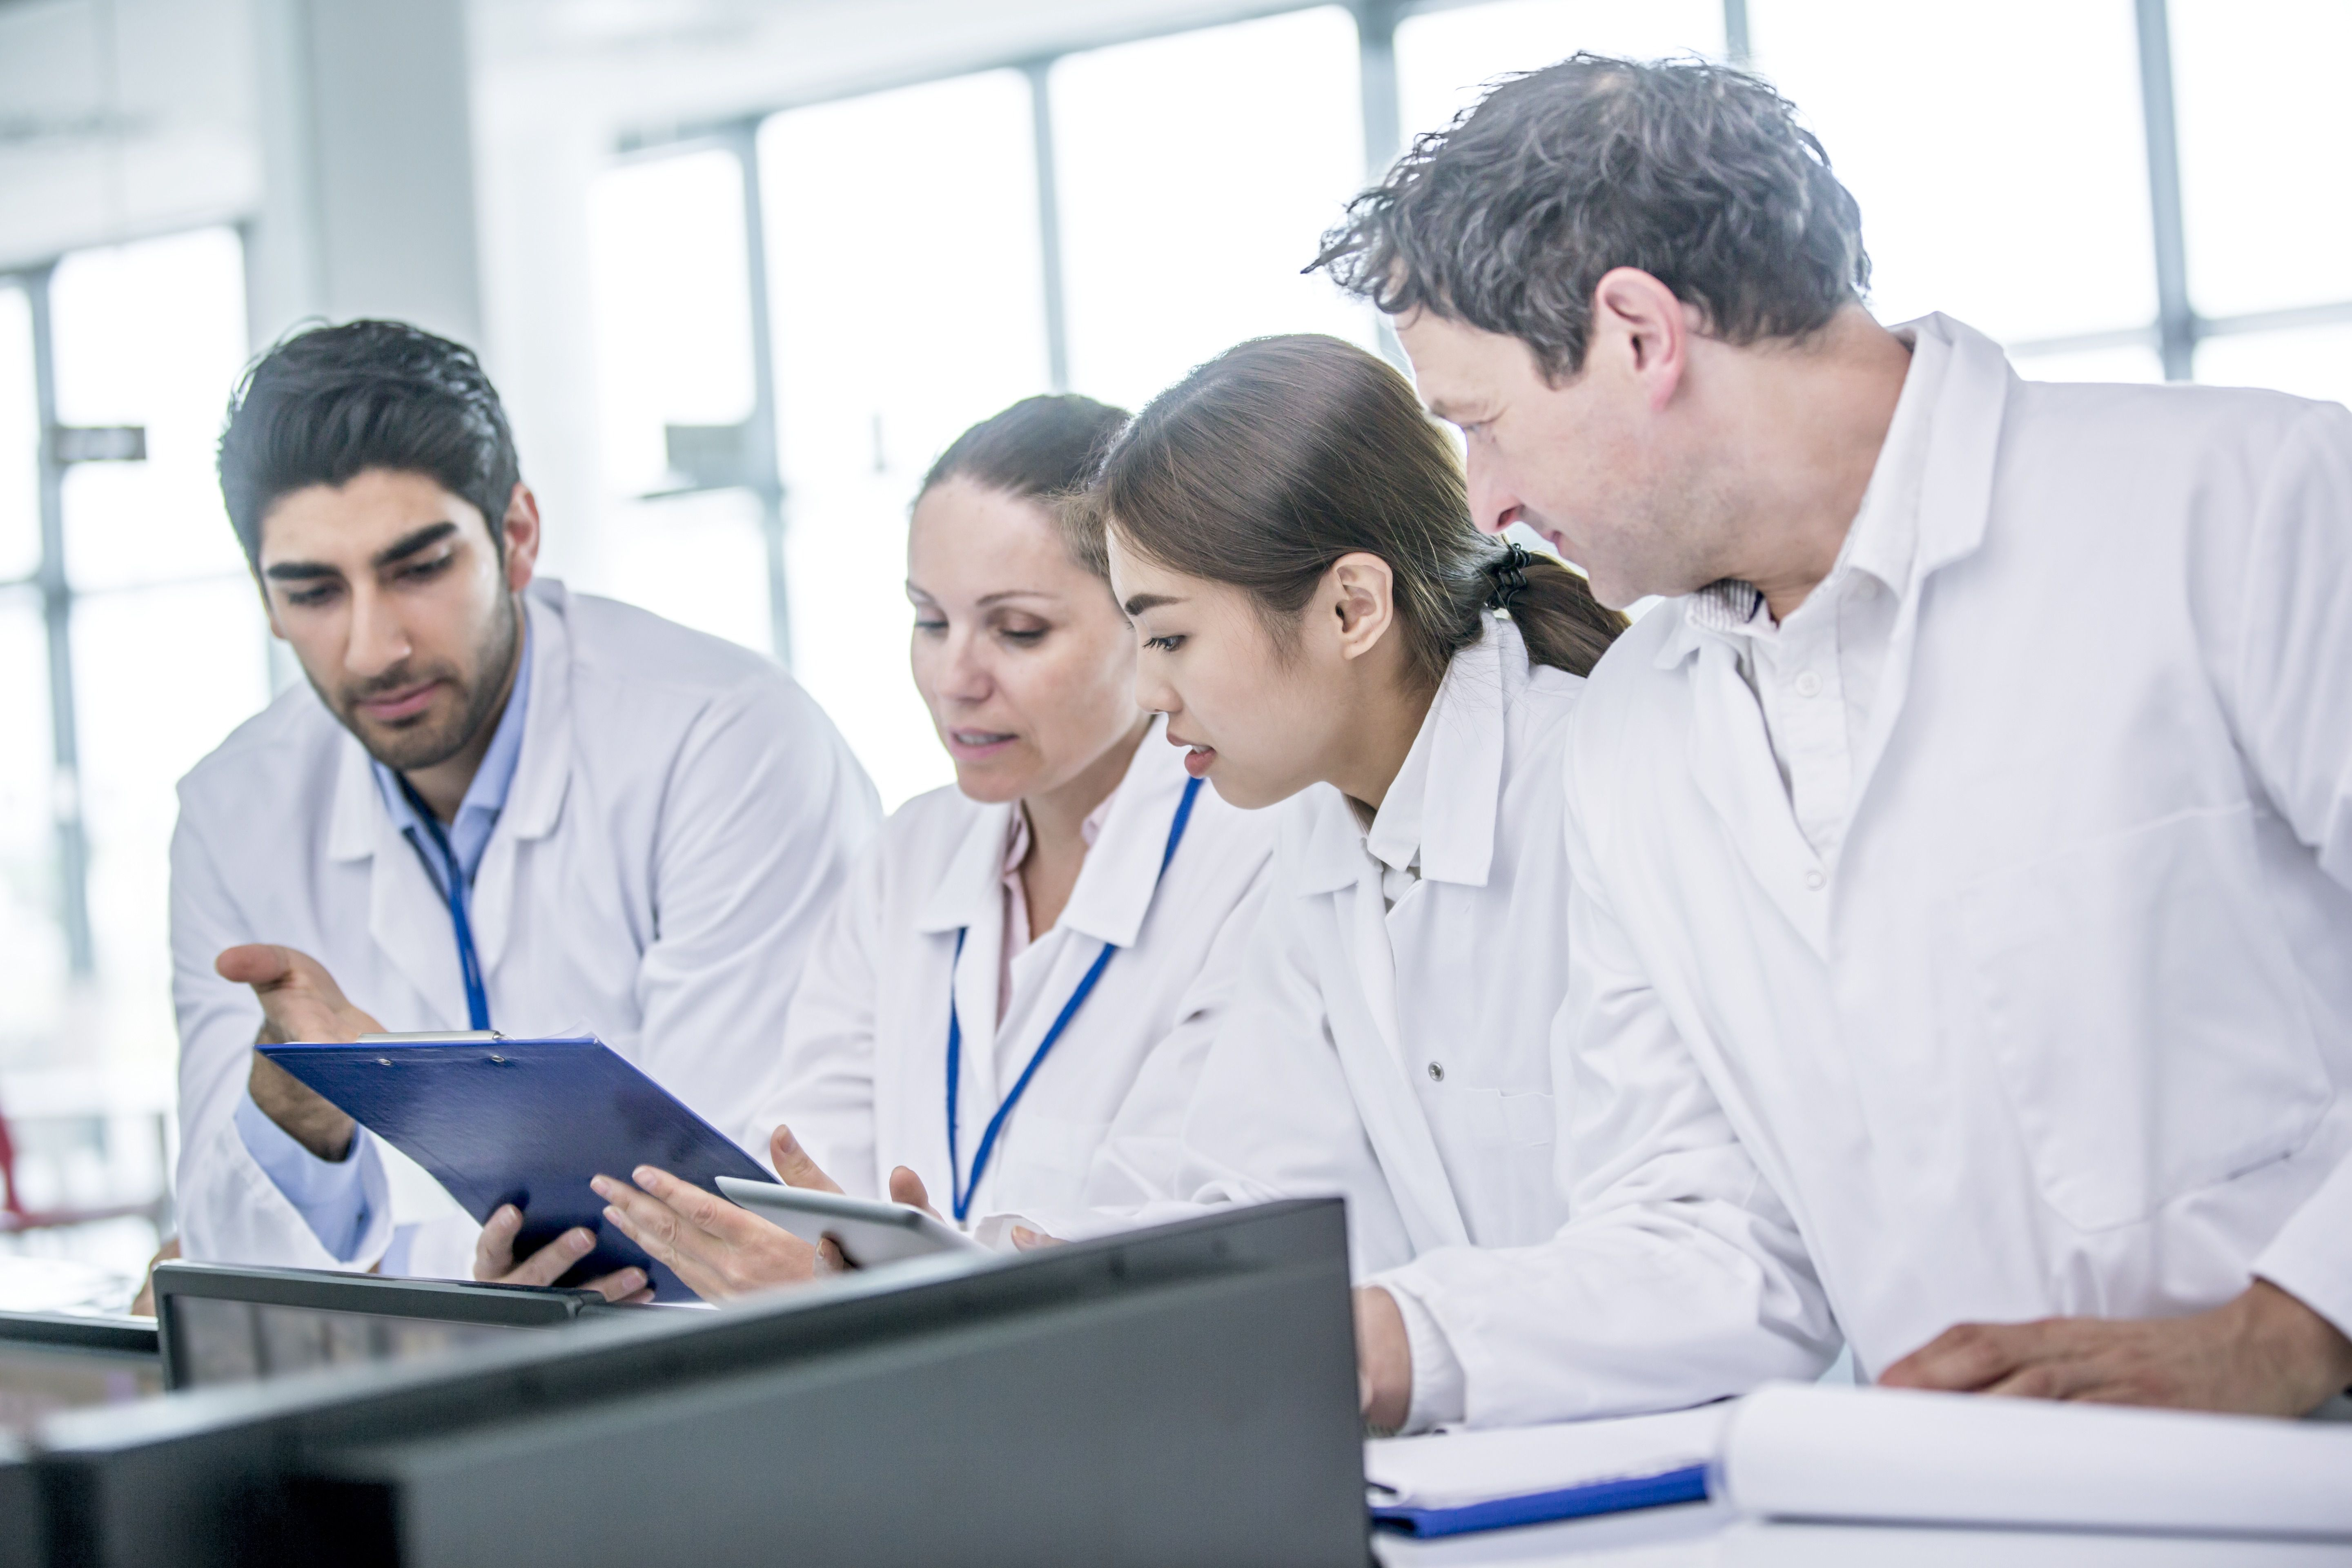 Medical students with clip board